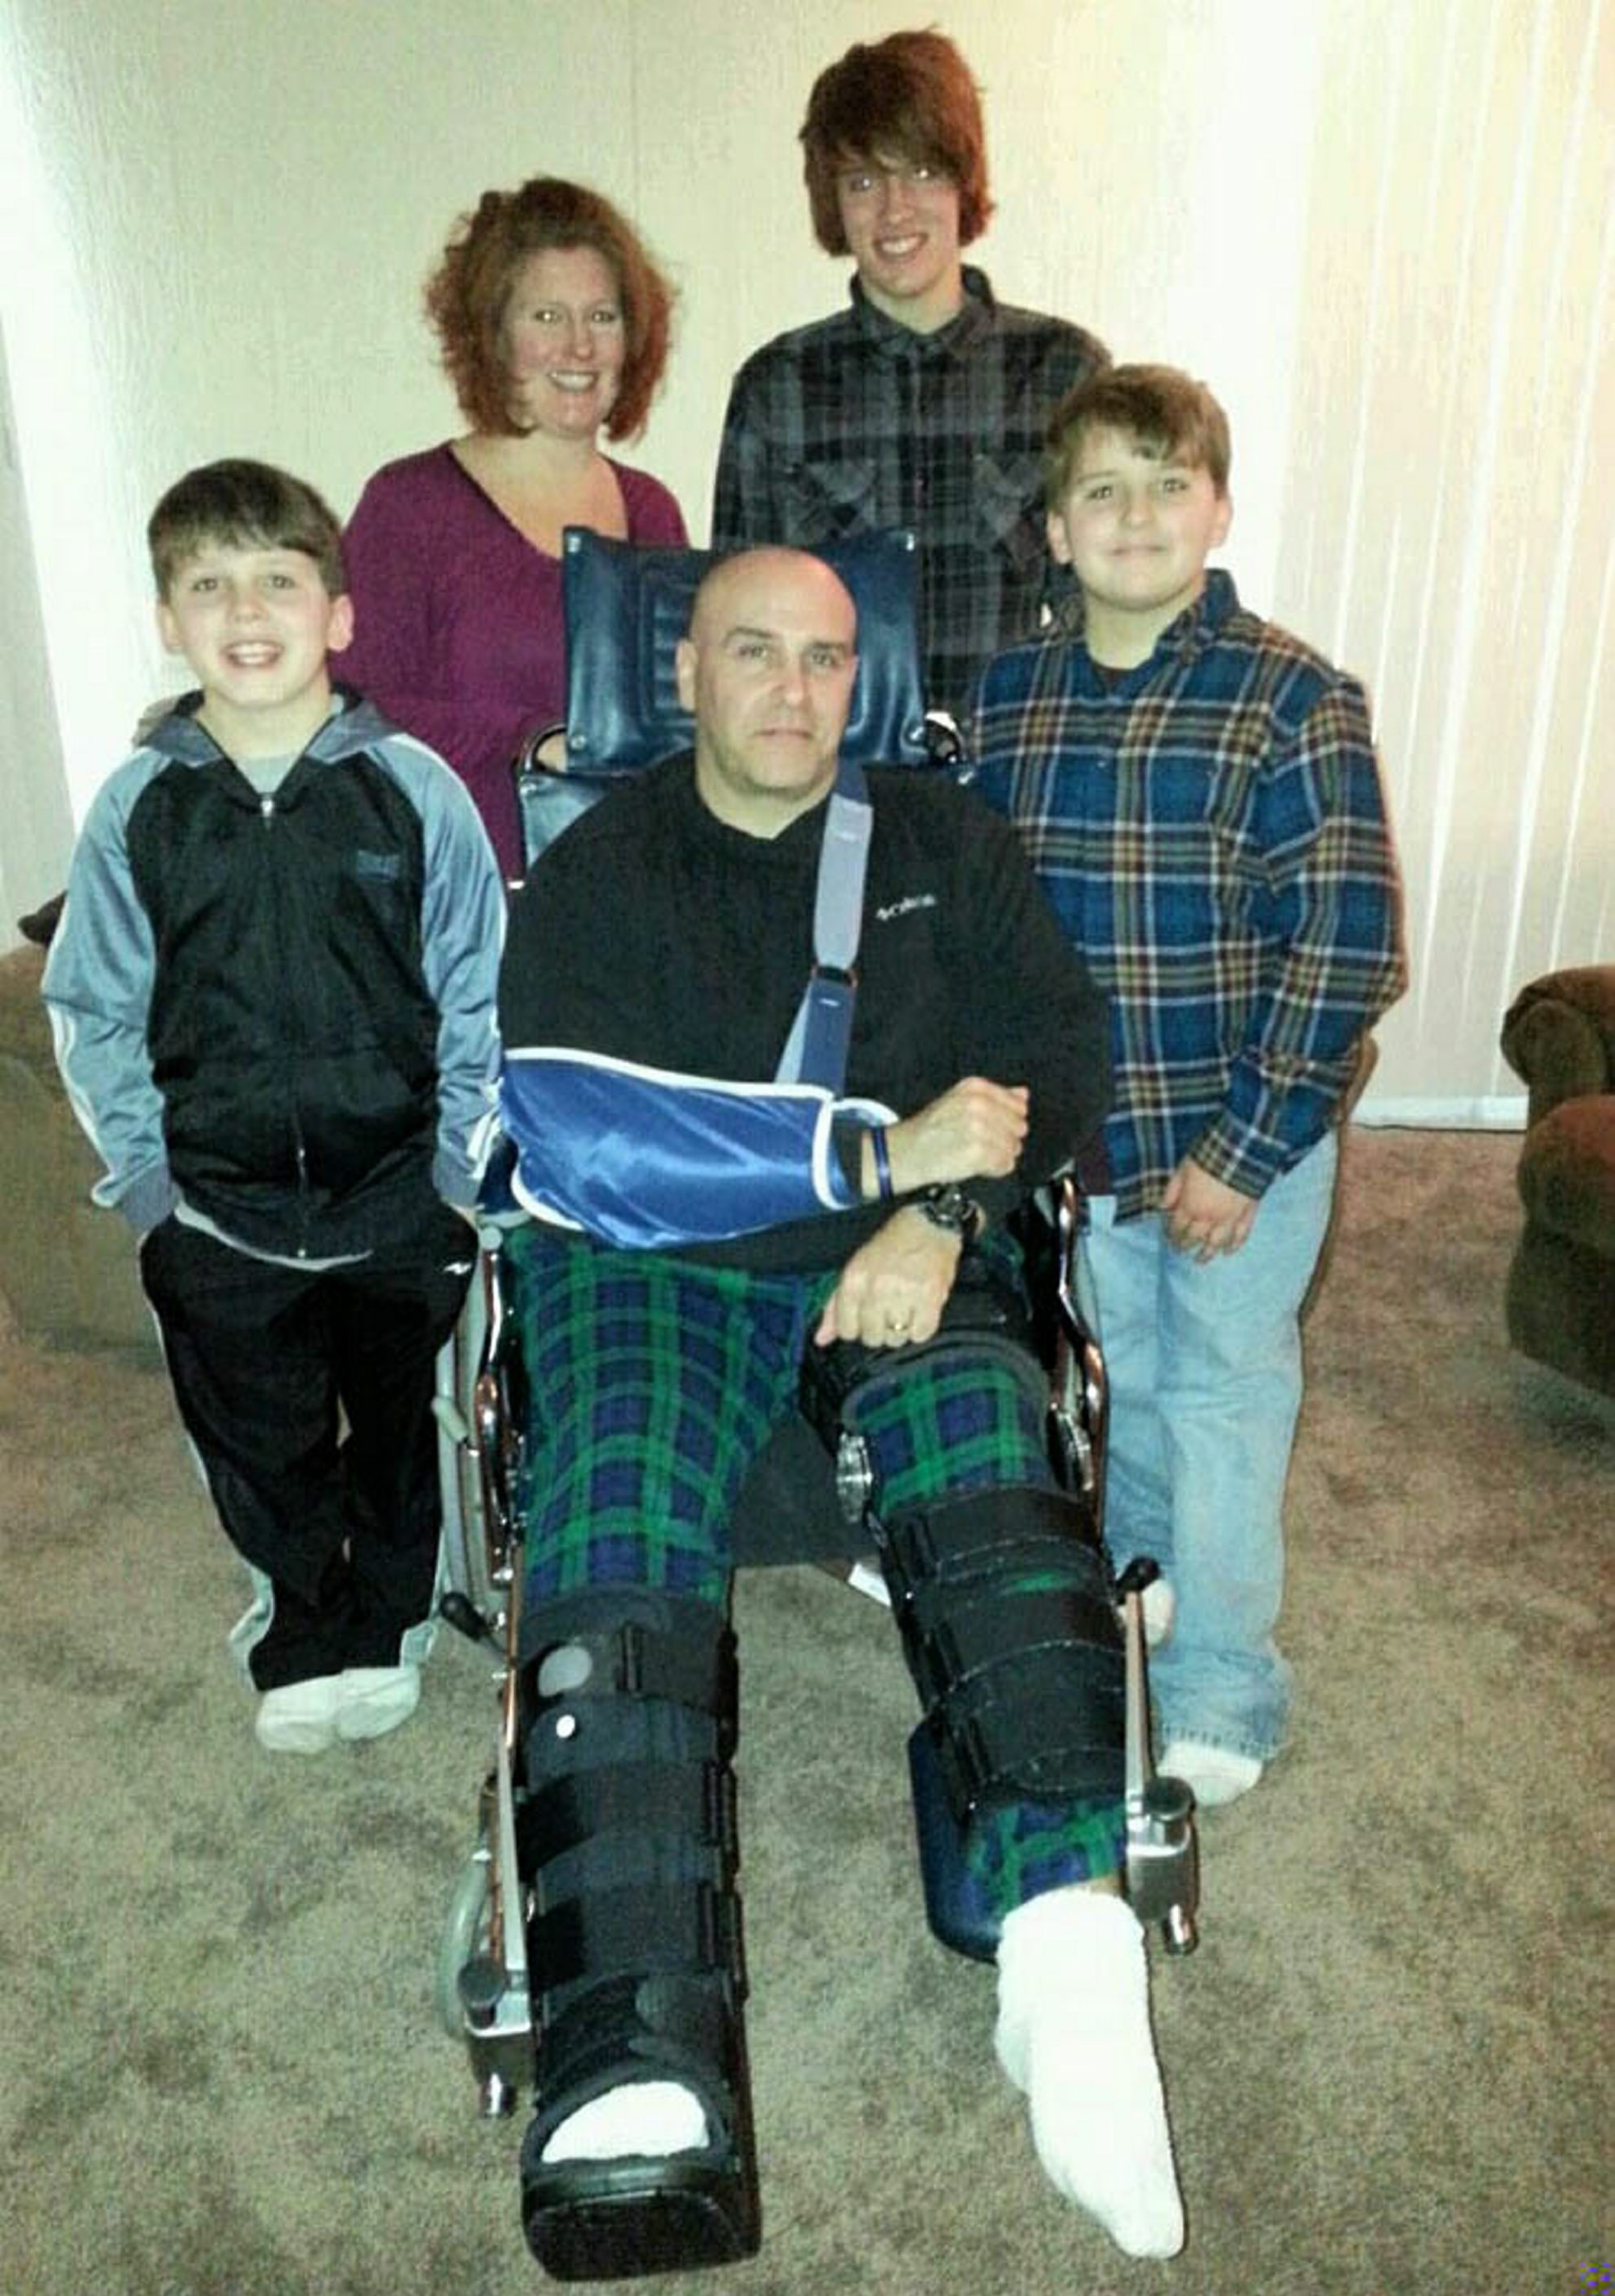 Mike McTiernan has used a wheelchair since the accident.